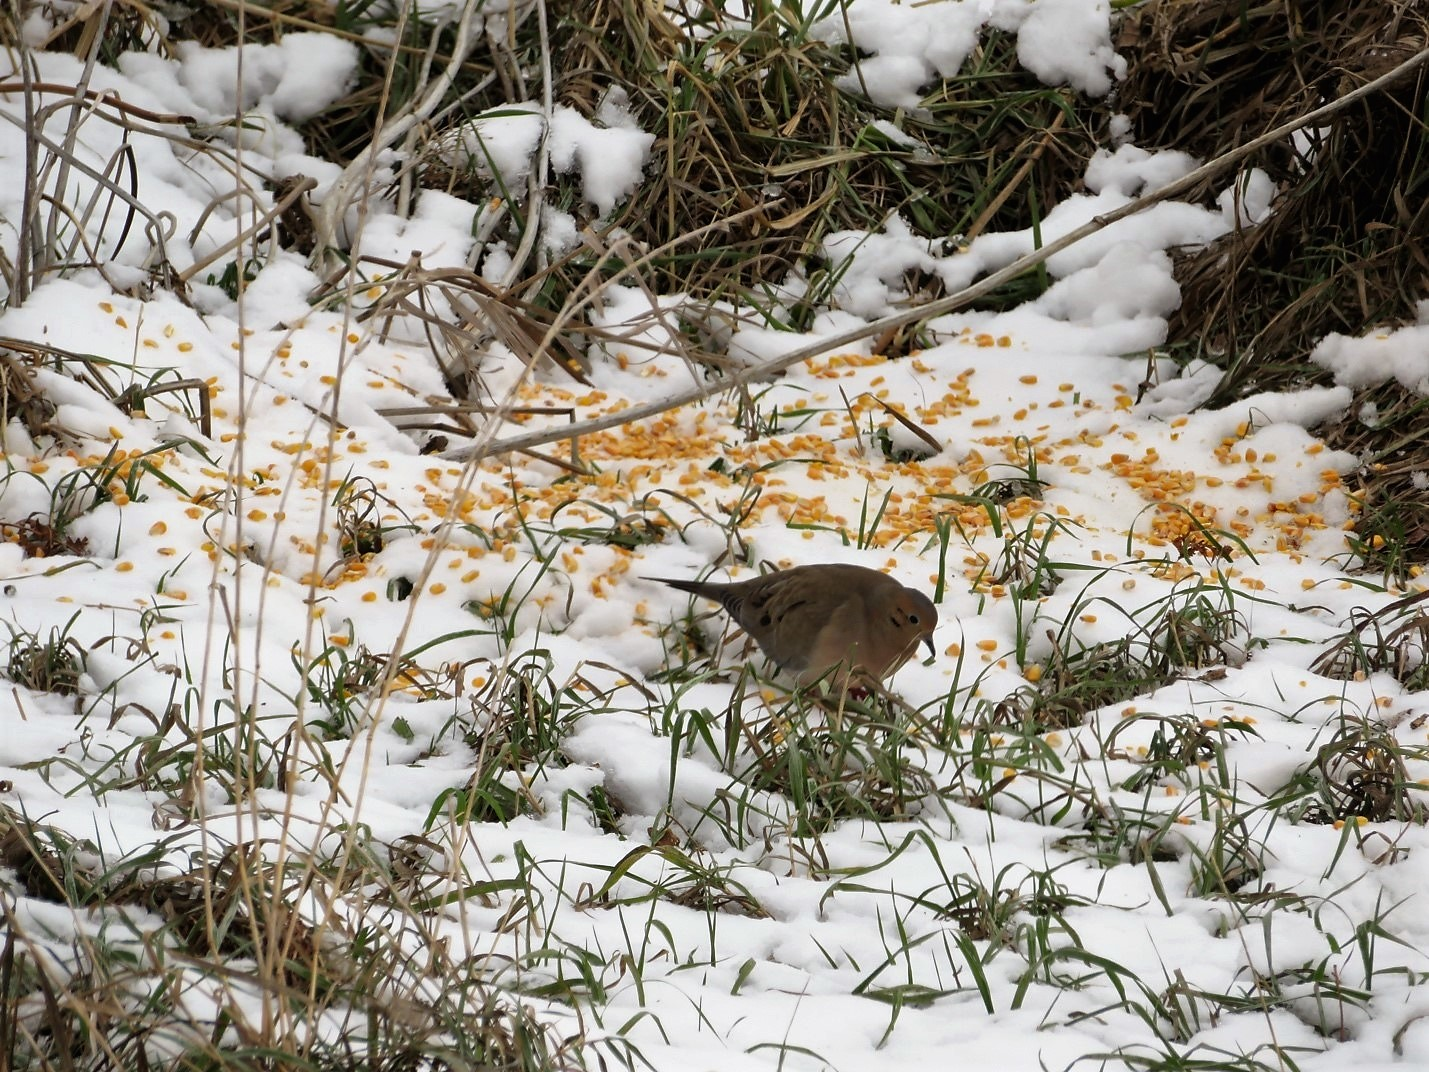 A mourning dove pecks through the shell corn we threw out for the rabbits.